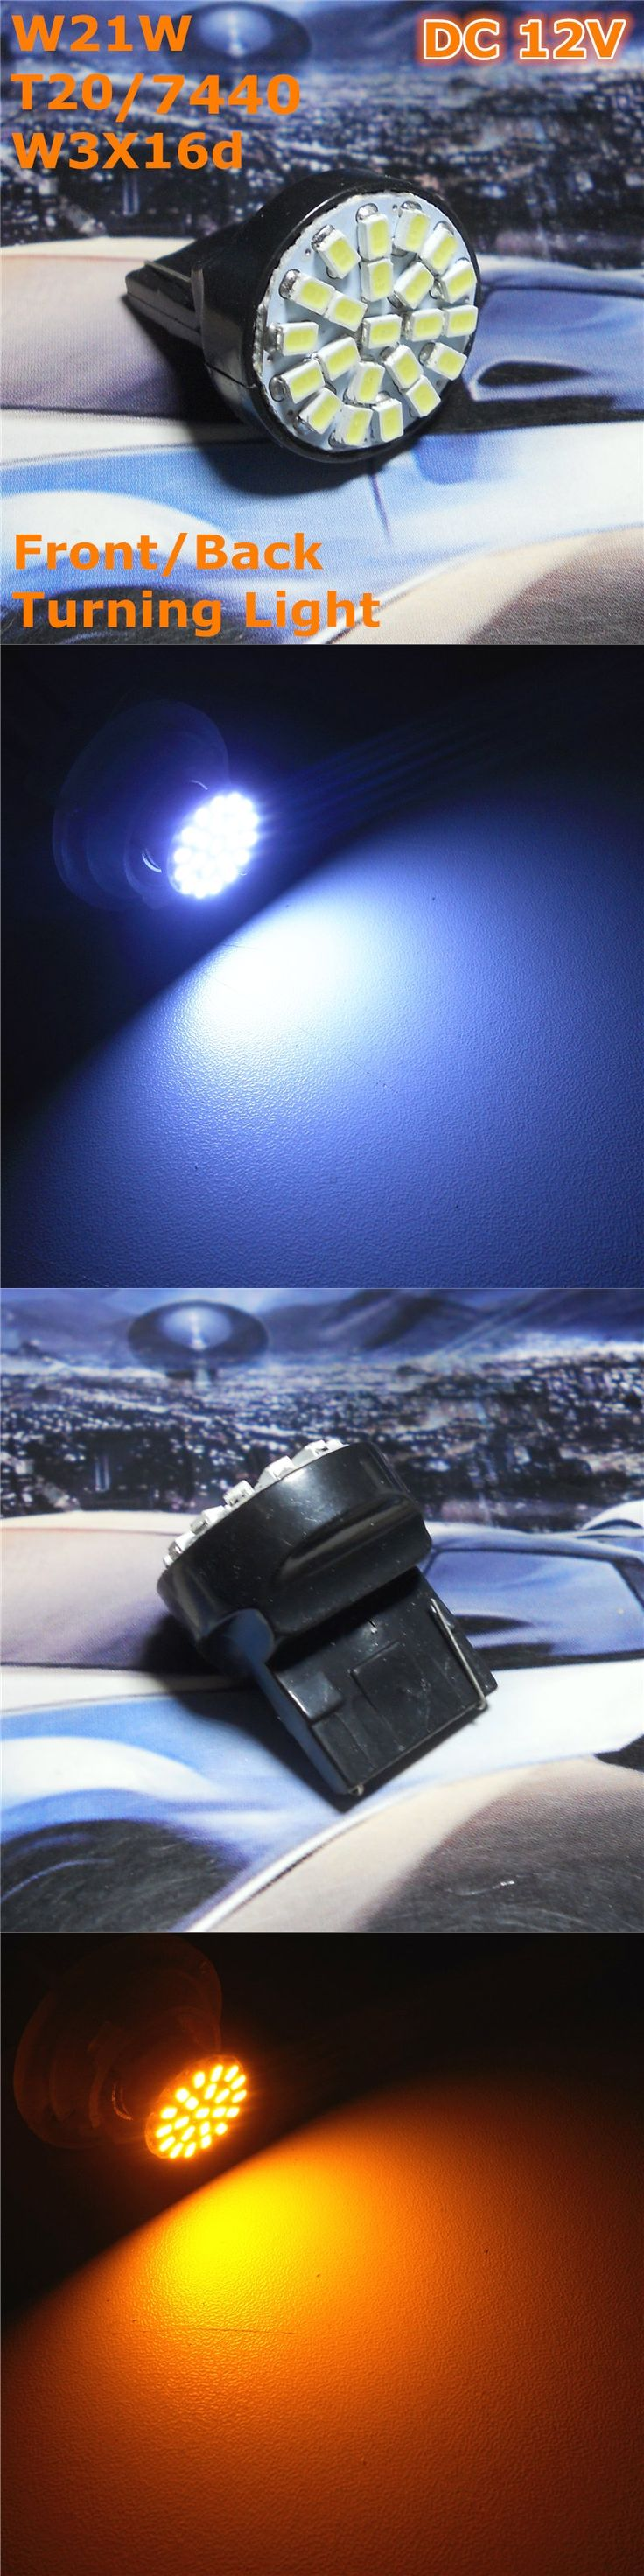 Stock Shipping New 12V LED(22*1206SMD) Car Lamp W21W T20 W3X16d Single Line For Front Back Turning Light Back Foglight